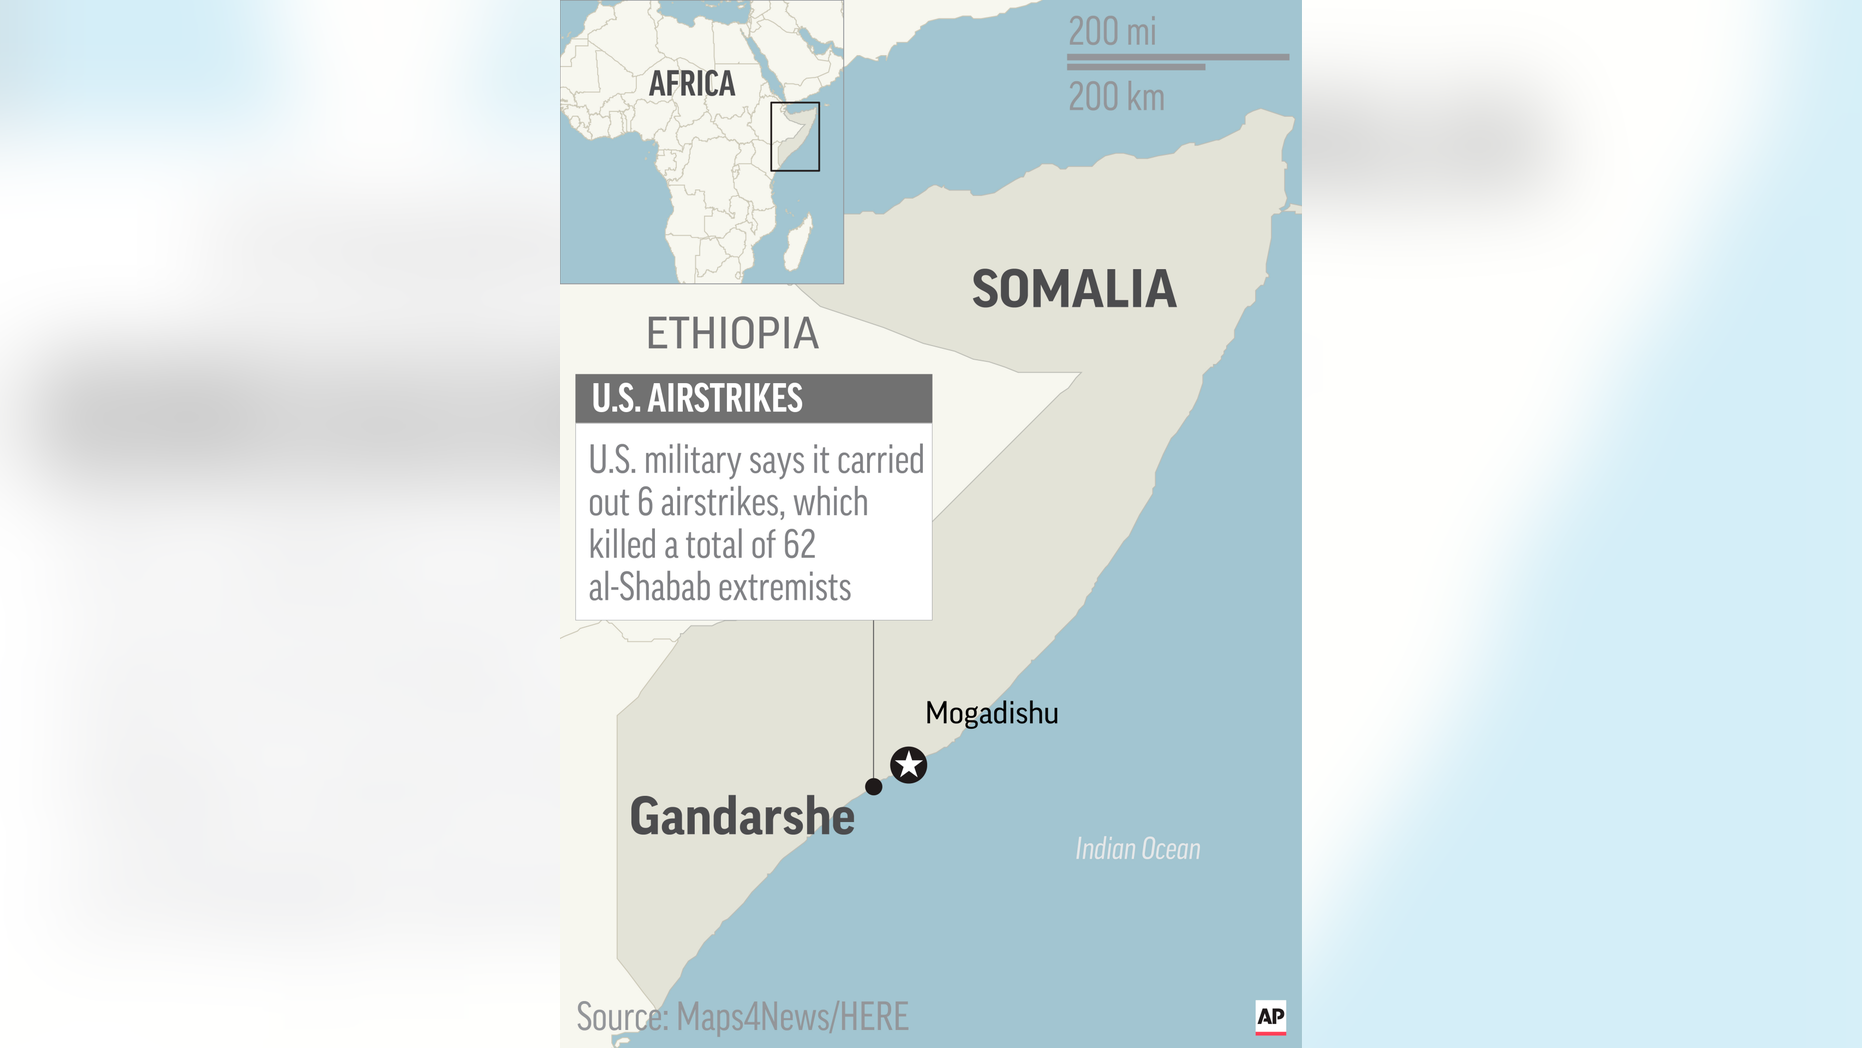 Map locates Gandarshe, Somalia, where U.S. airstrikes killed al-Shabab extremists; 2c x 4 1/2 inches; 96.3 mm x 114 mm;